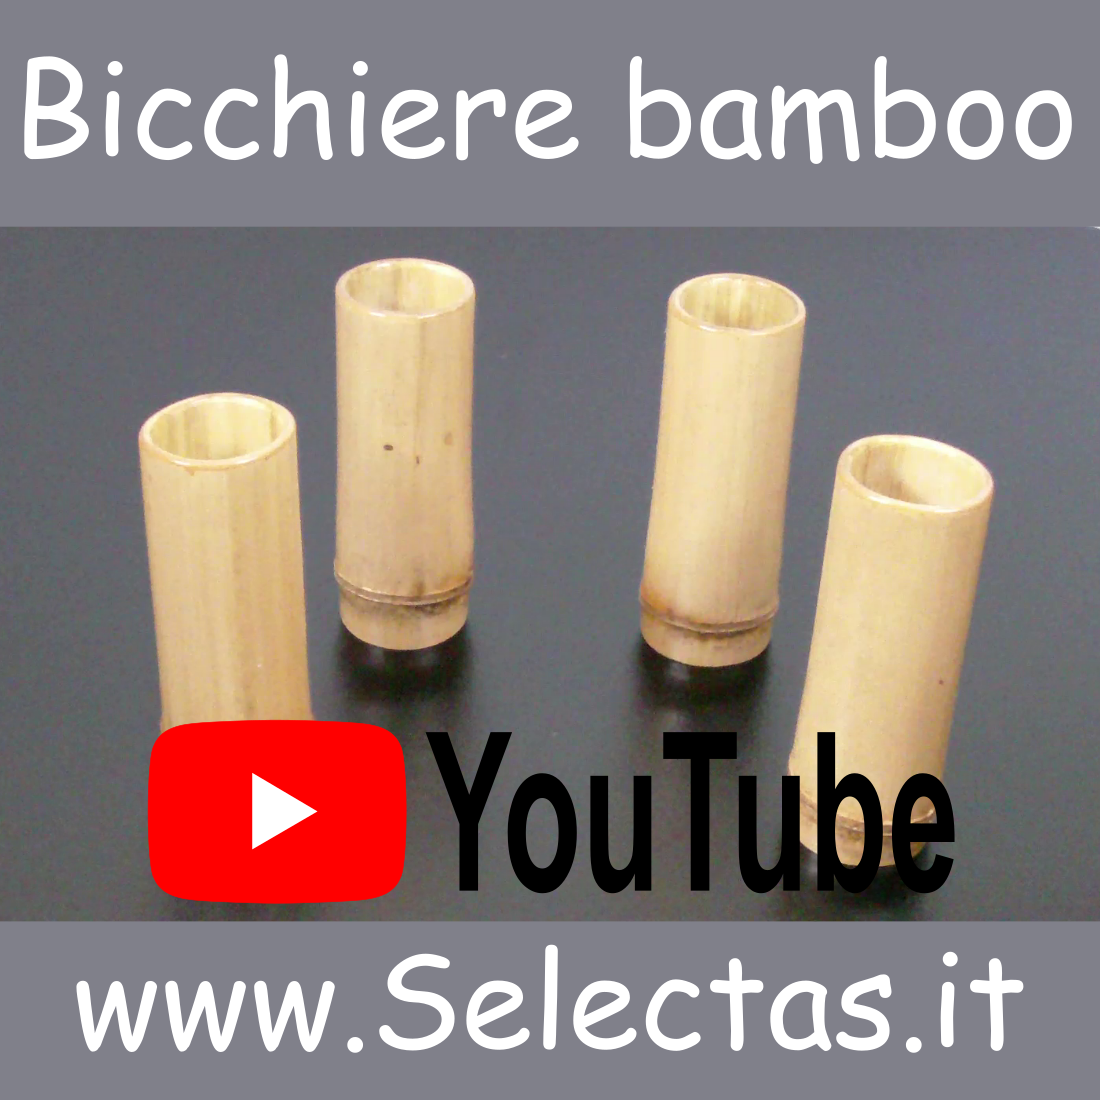 Video Bicchiere bamboo